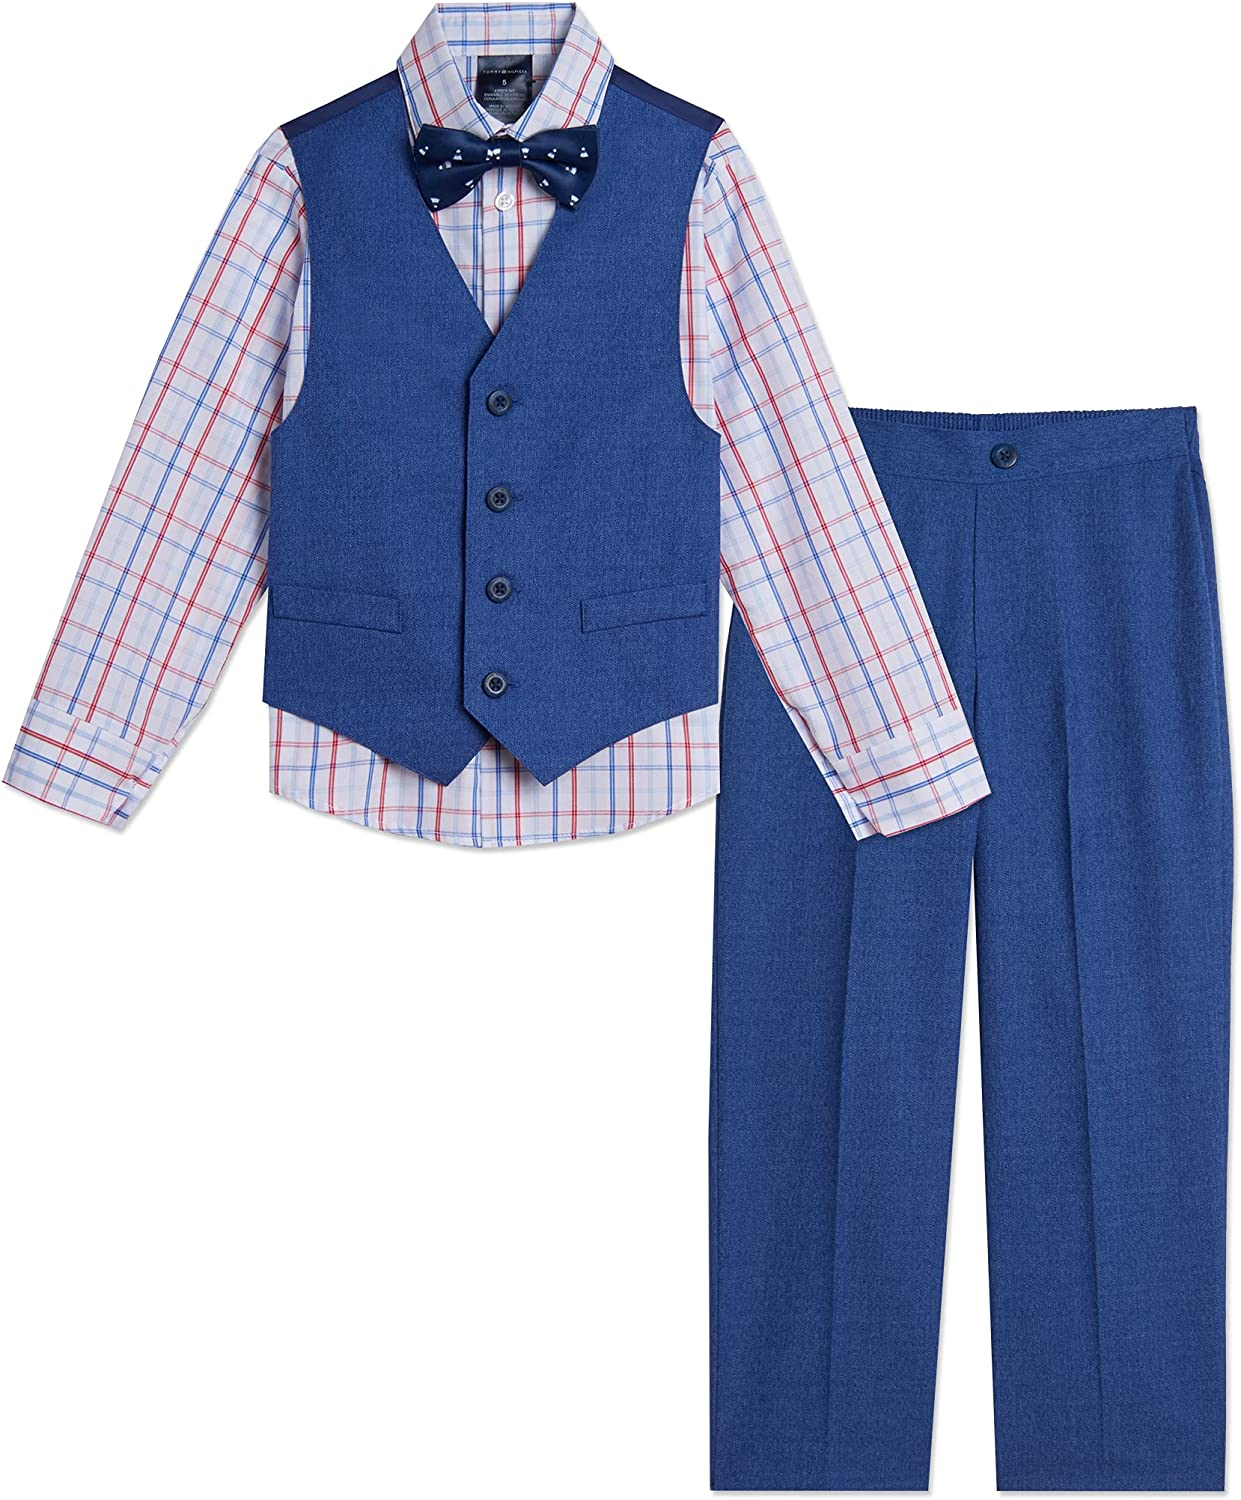 Tommy Hilfiger Max 49% OFF Boys 4-Piece Formal Suit San Francisco Mall Set Shir Dress Includes